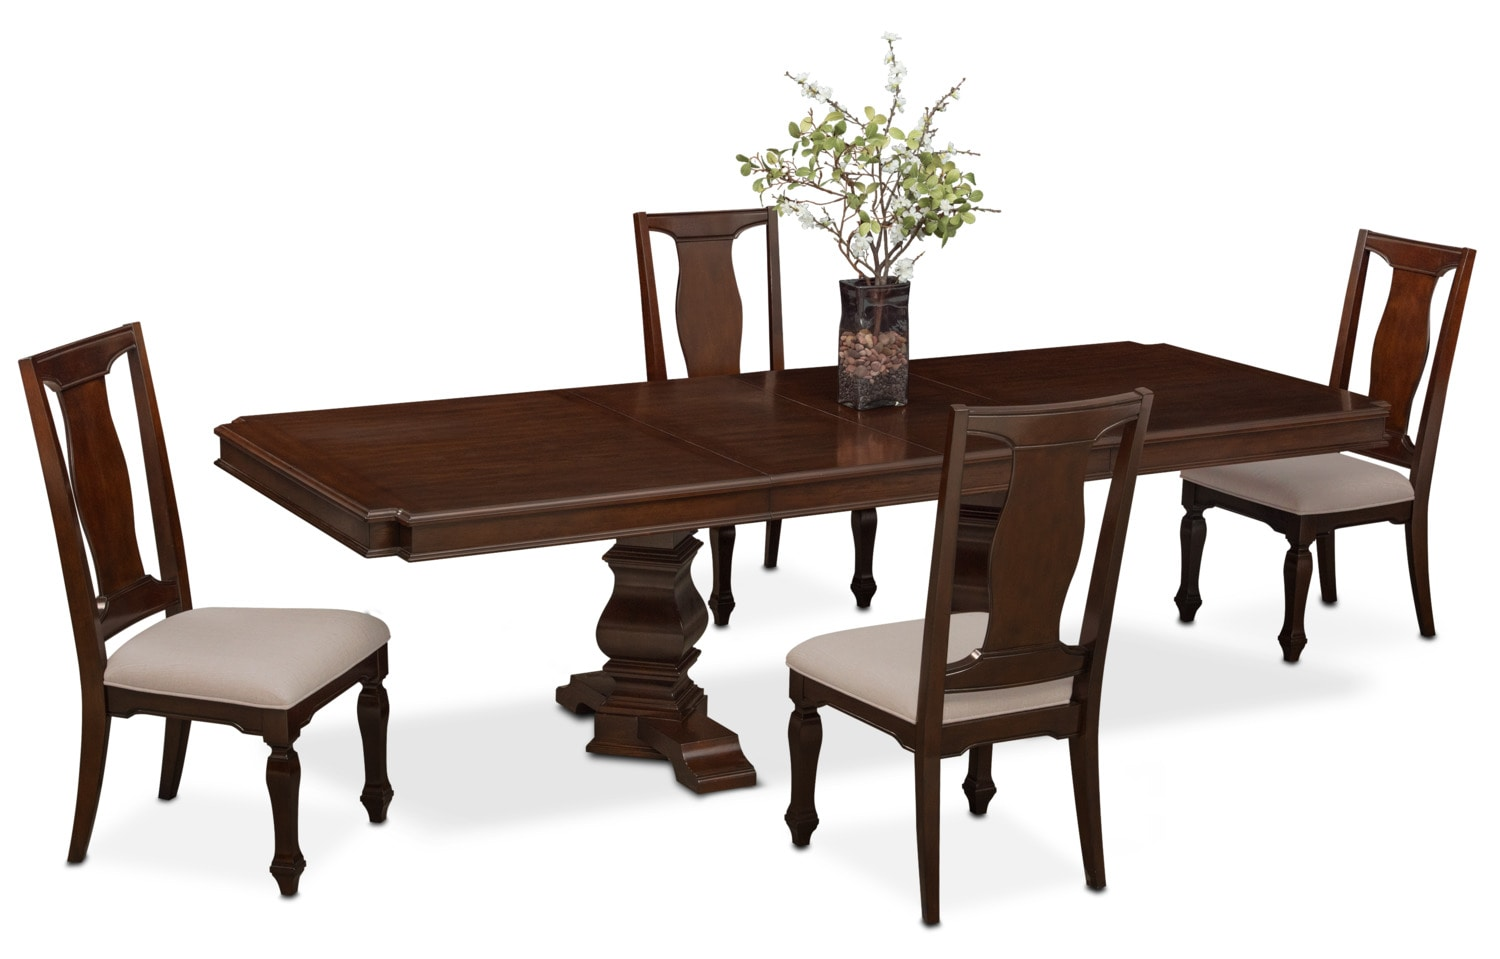 value city dining table and chairs swivel chair base repair vienna rectangular 4 side merlot